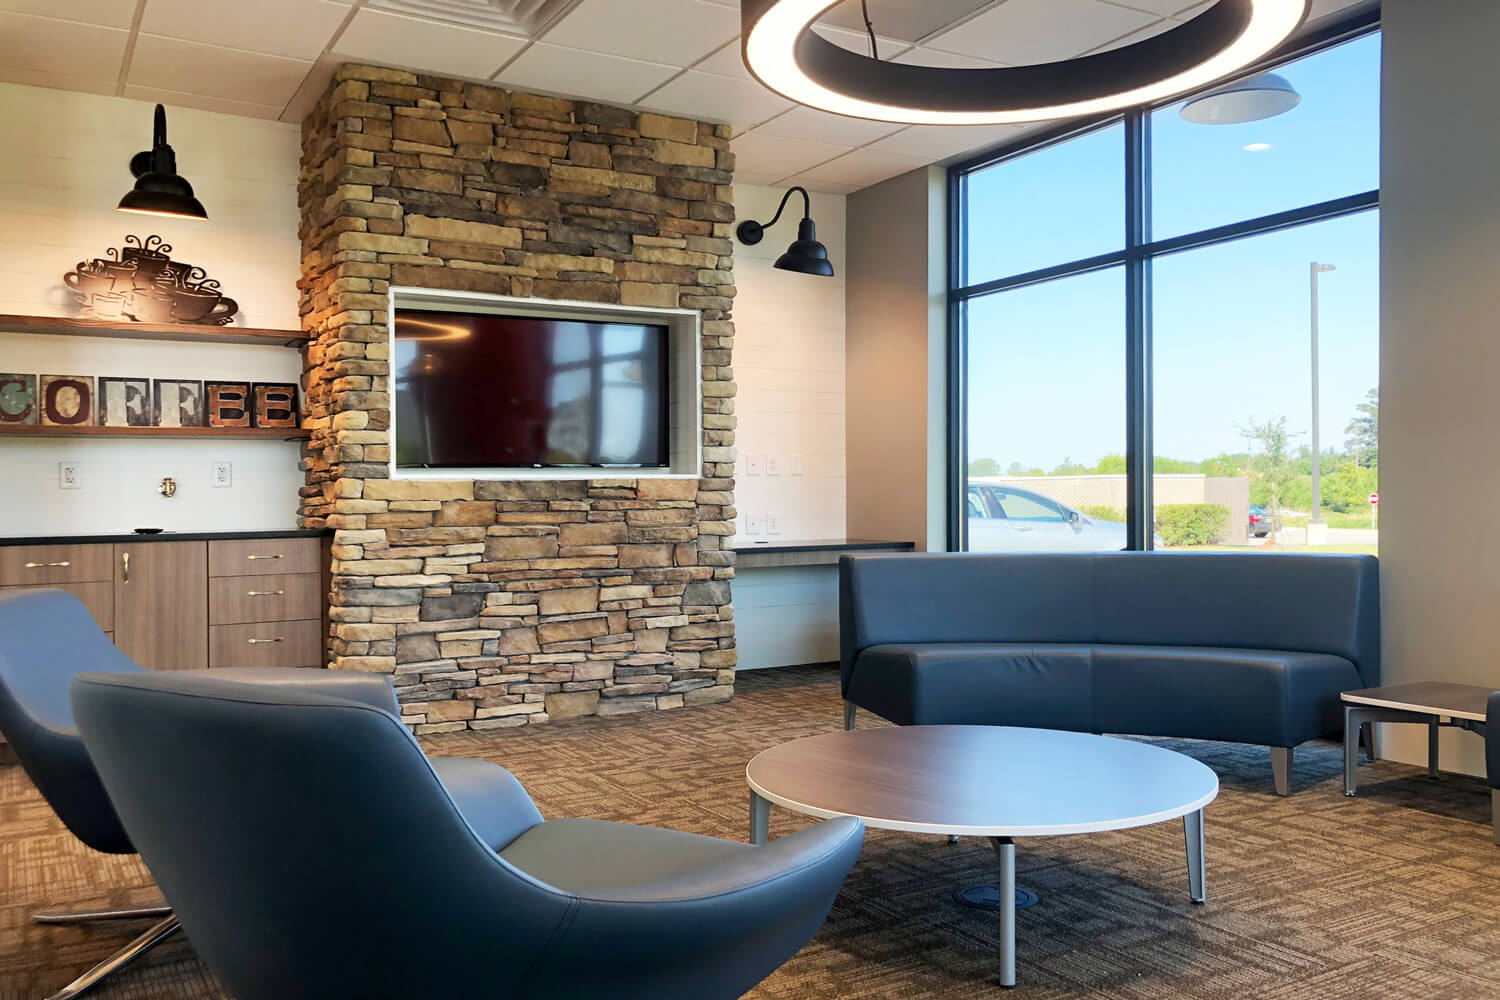 Guardian Credit Union - Customer Lounge - Designed by Foshee Architecture